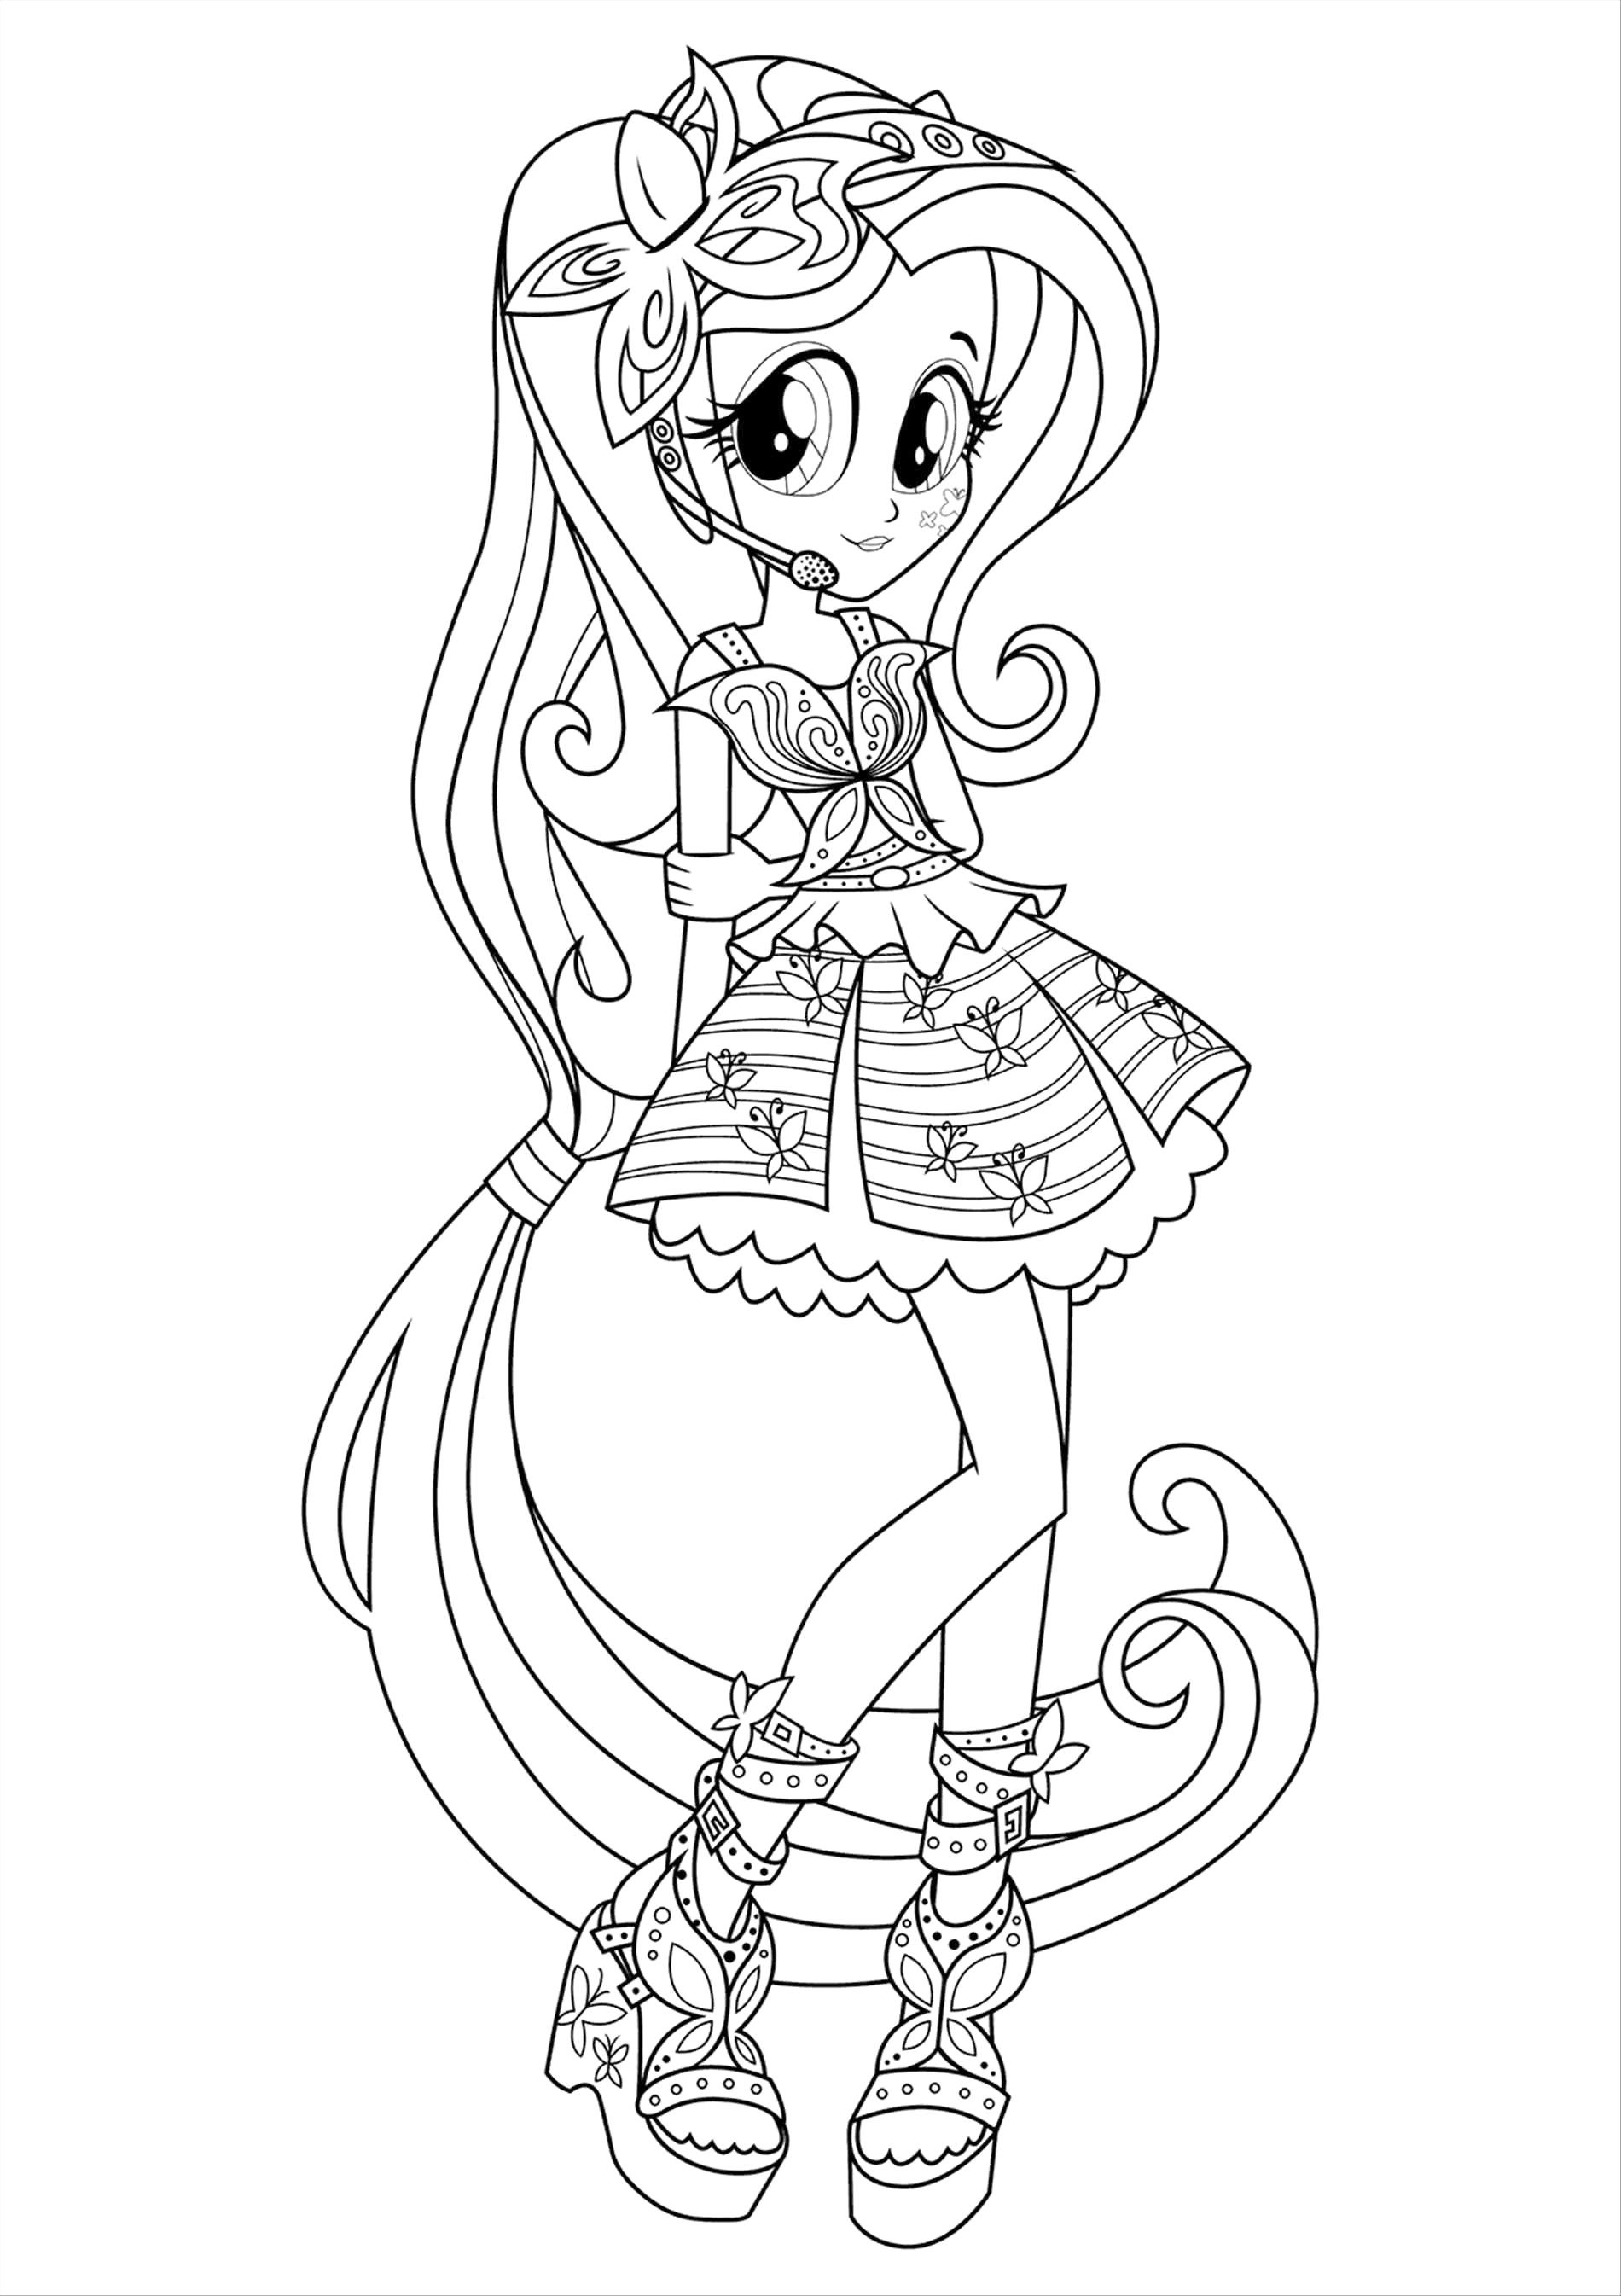 My Little Pony Equestria Girls Coloring Pages Coloring Pages Coloring Pages My Littleny Gi My Little Pony Coloring Princess Coloring Pages Horse Coloring Pages